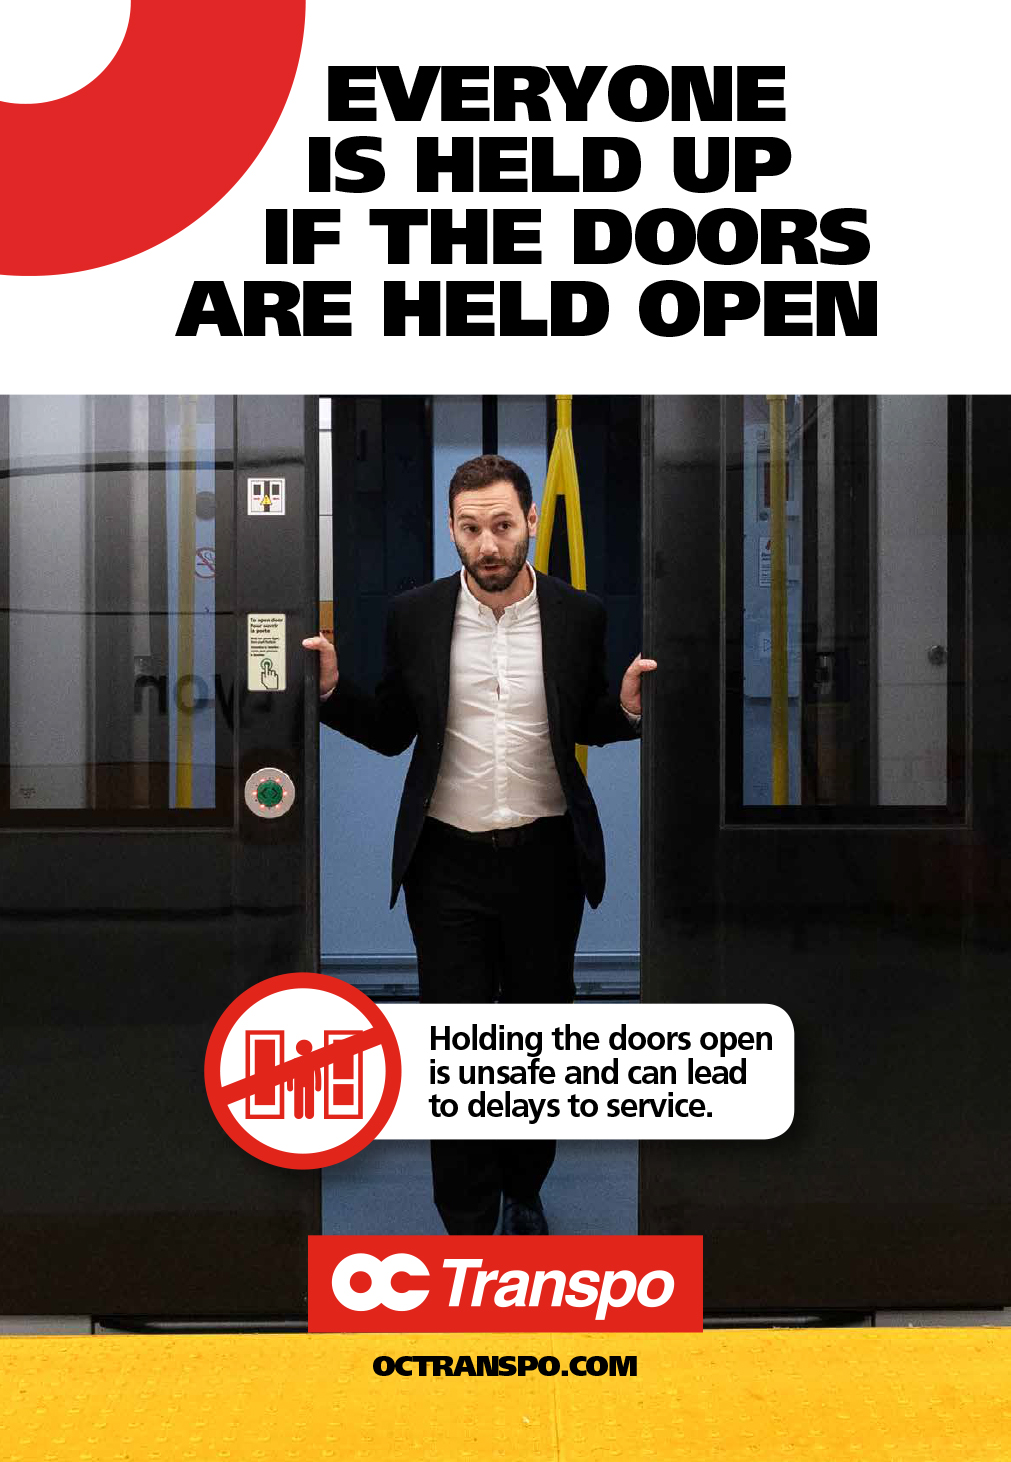 Man prying open train doors with image text: Everyone is held up if the doors are held open